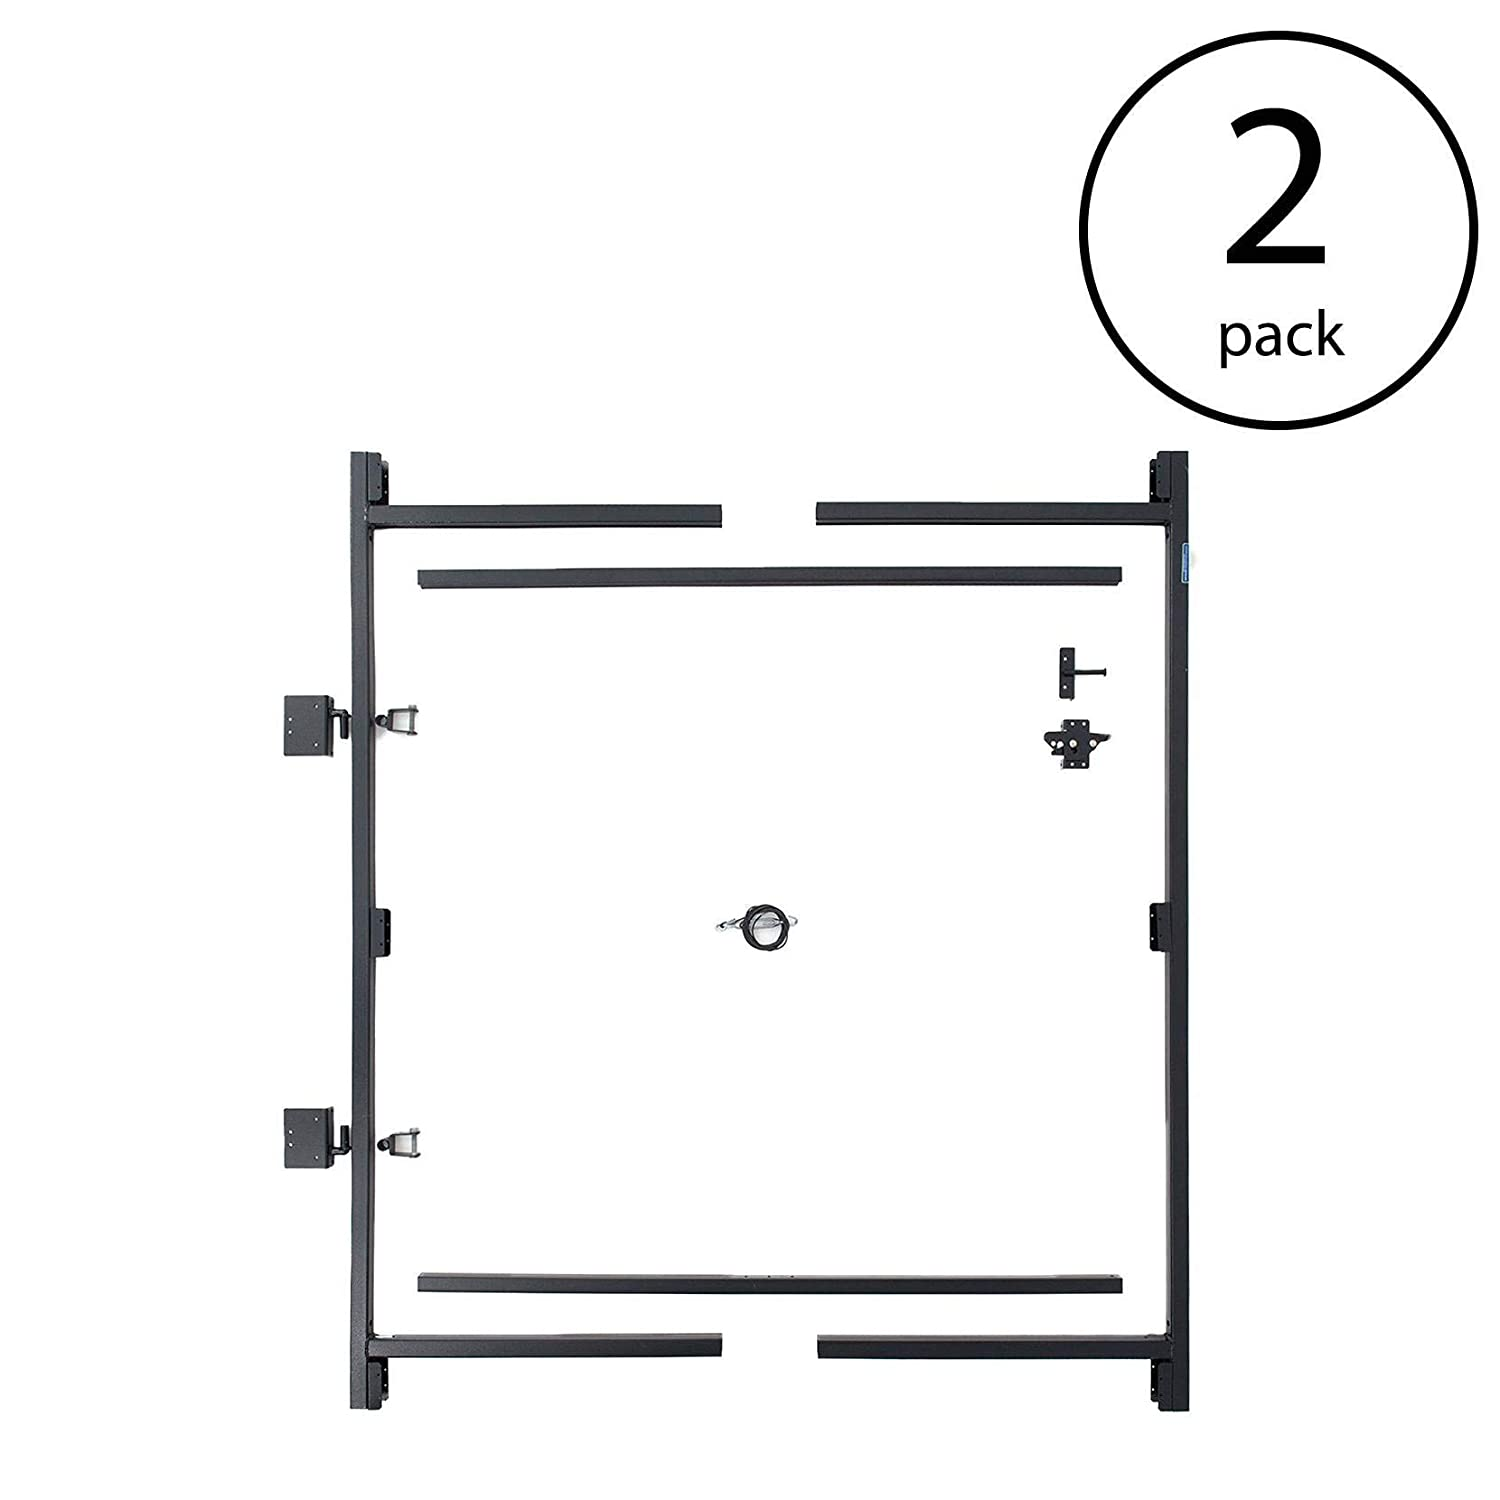 Adjust-A-Gate Steel Frame Gate Building Kit, 60 -96 Wide, 6 High 2 Pack